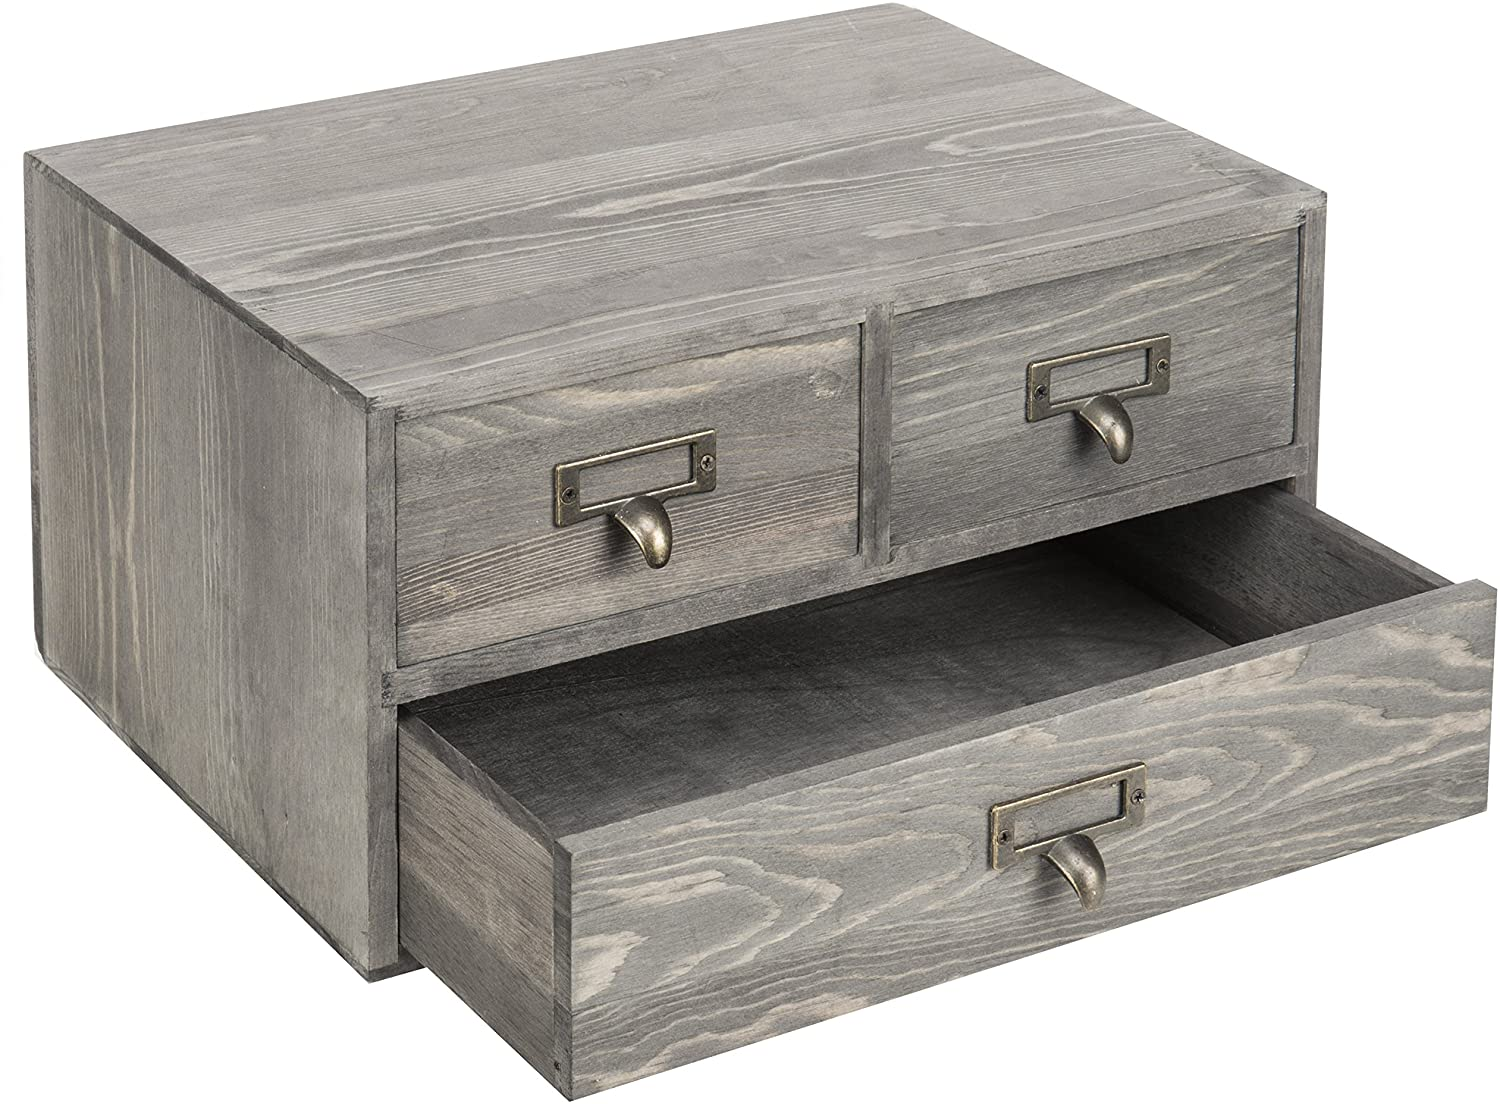 MyGift Rustic Gray Wooden 48-Drawer Desktop Storage Box Organizer